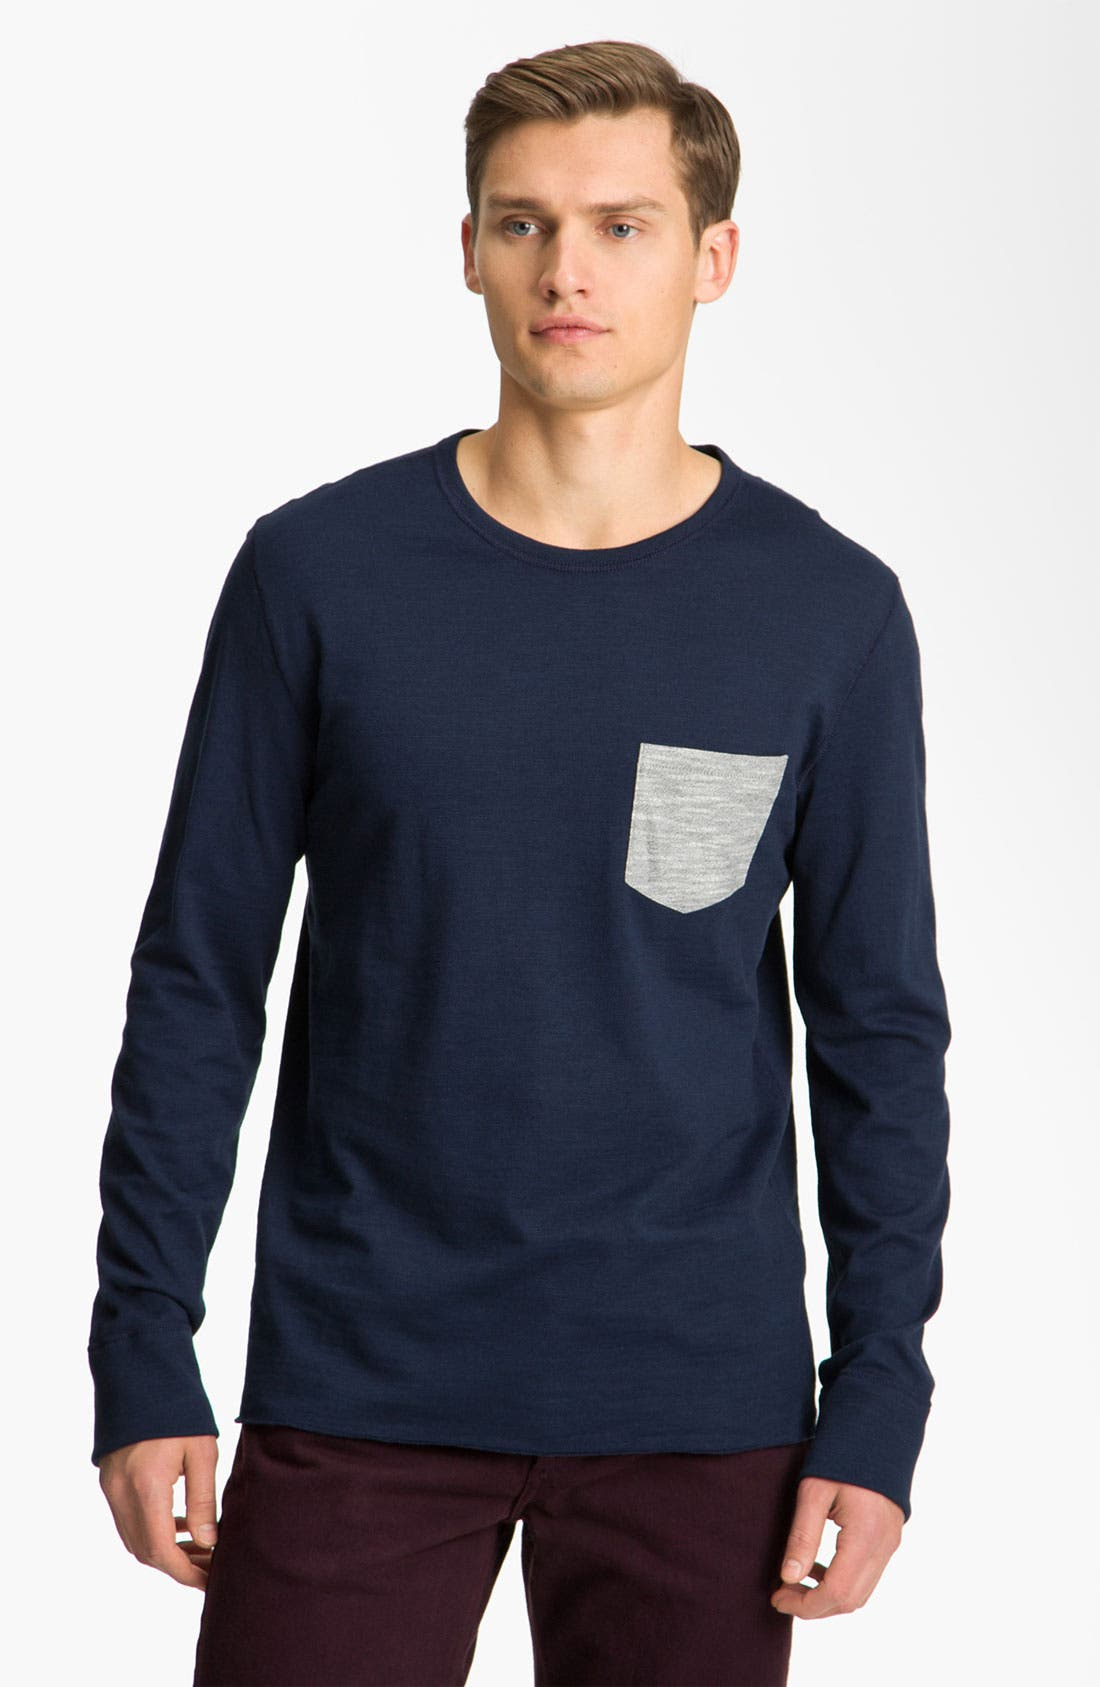 Alternate Image 1 Selected - rag & bone Long Sleeve Crewneck T-Shirt